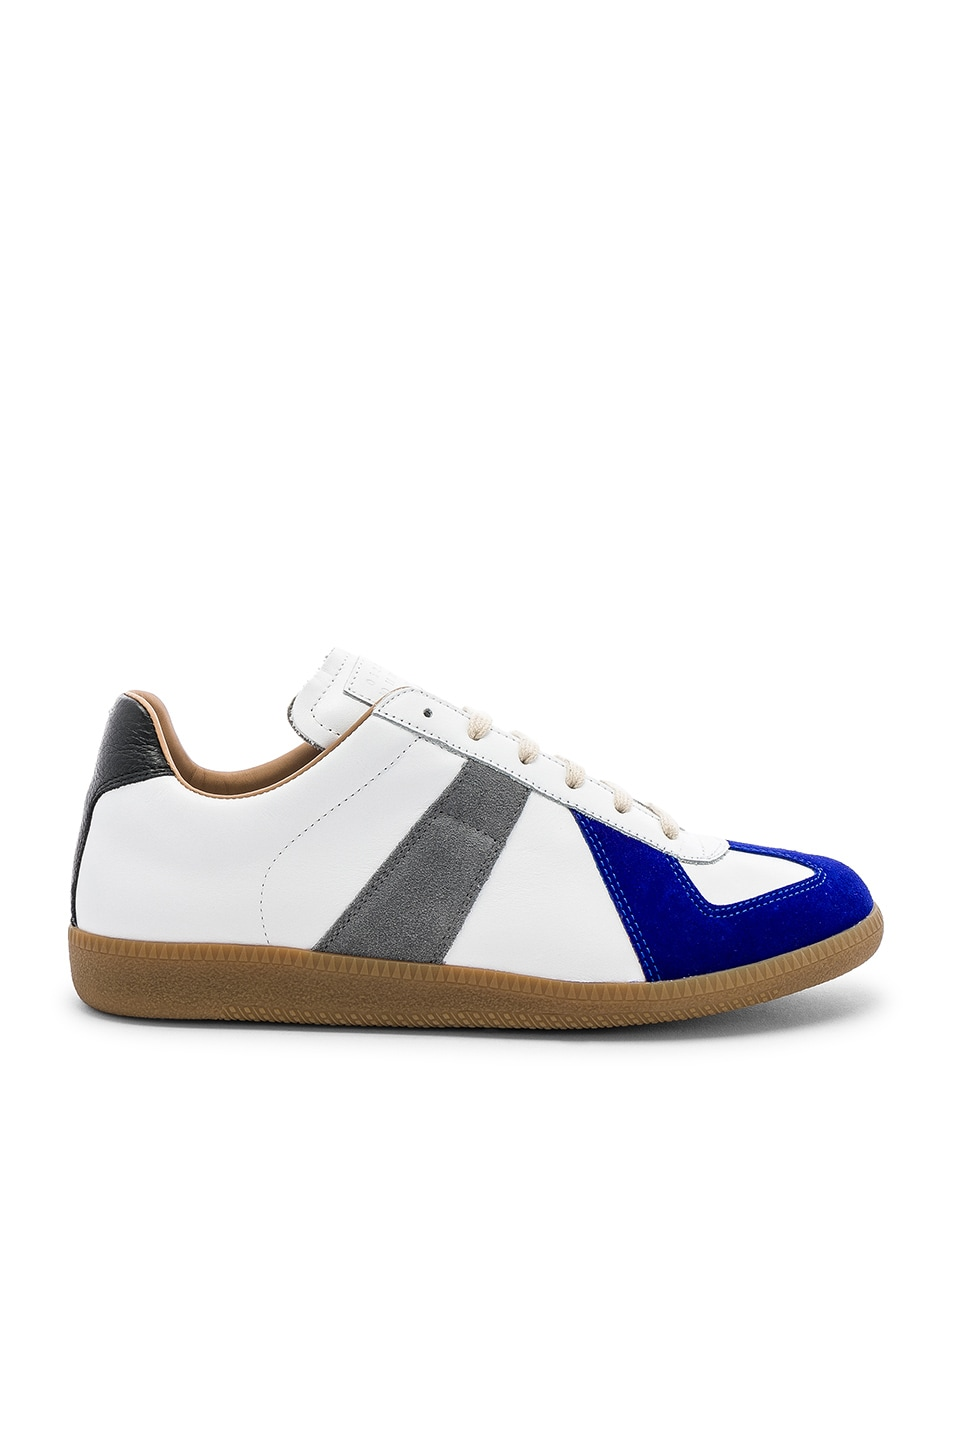 Image 2 of Maison Margiela Leather Replica Low Tops in White & Blue